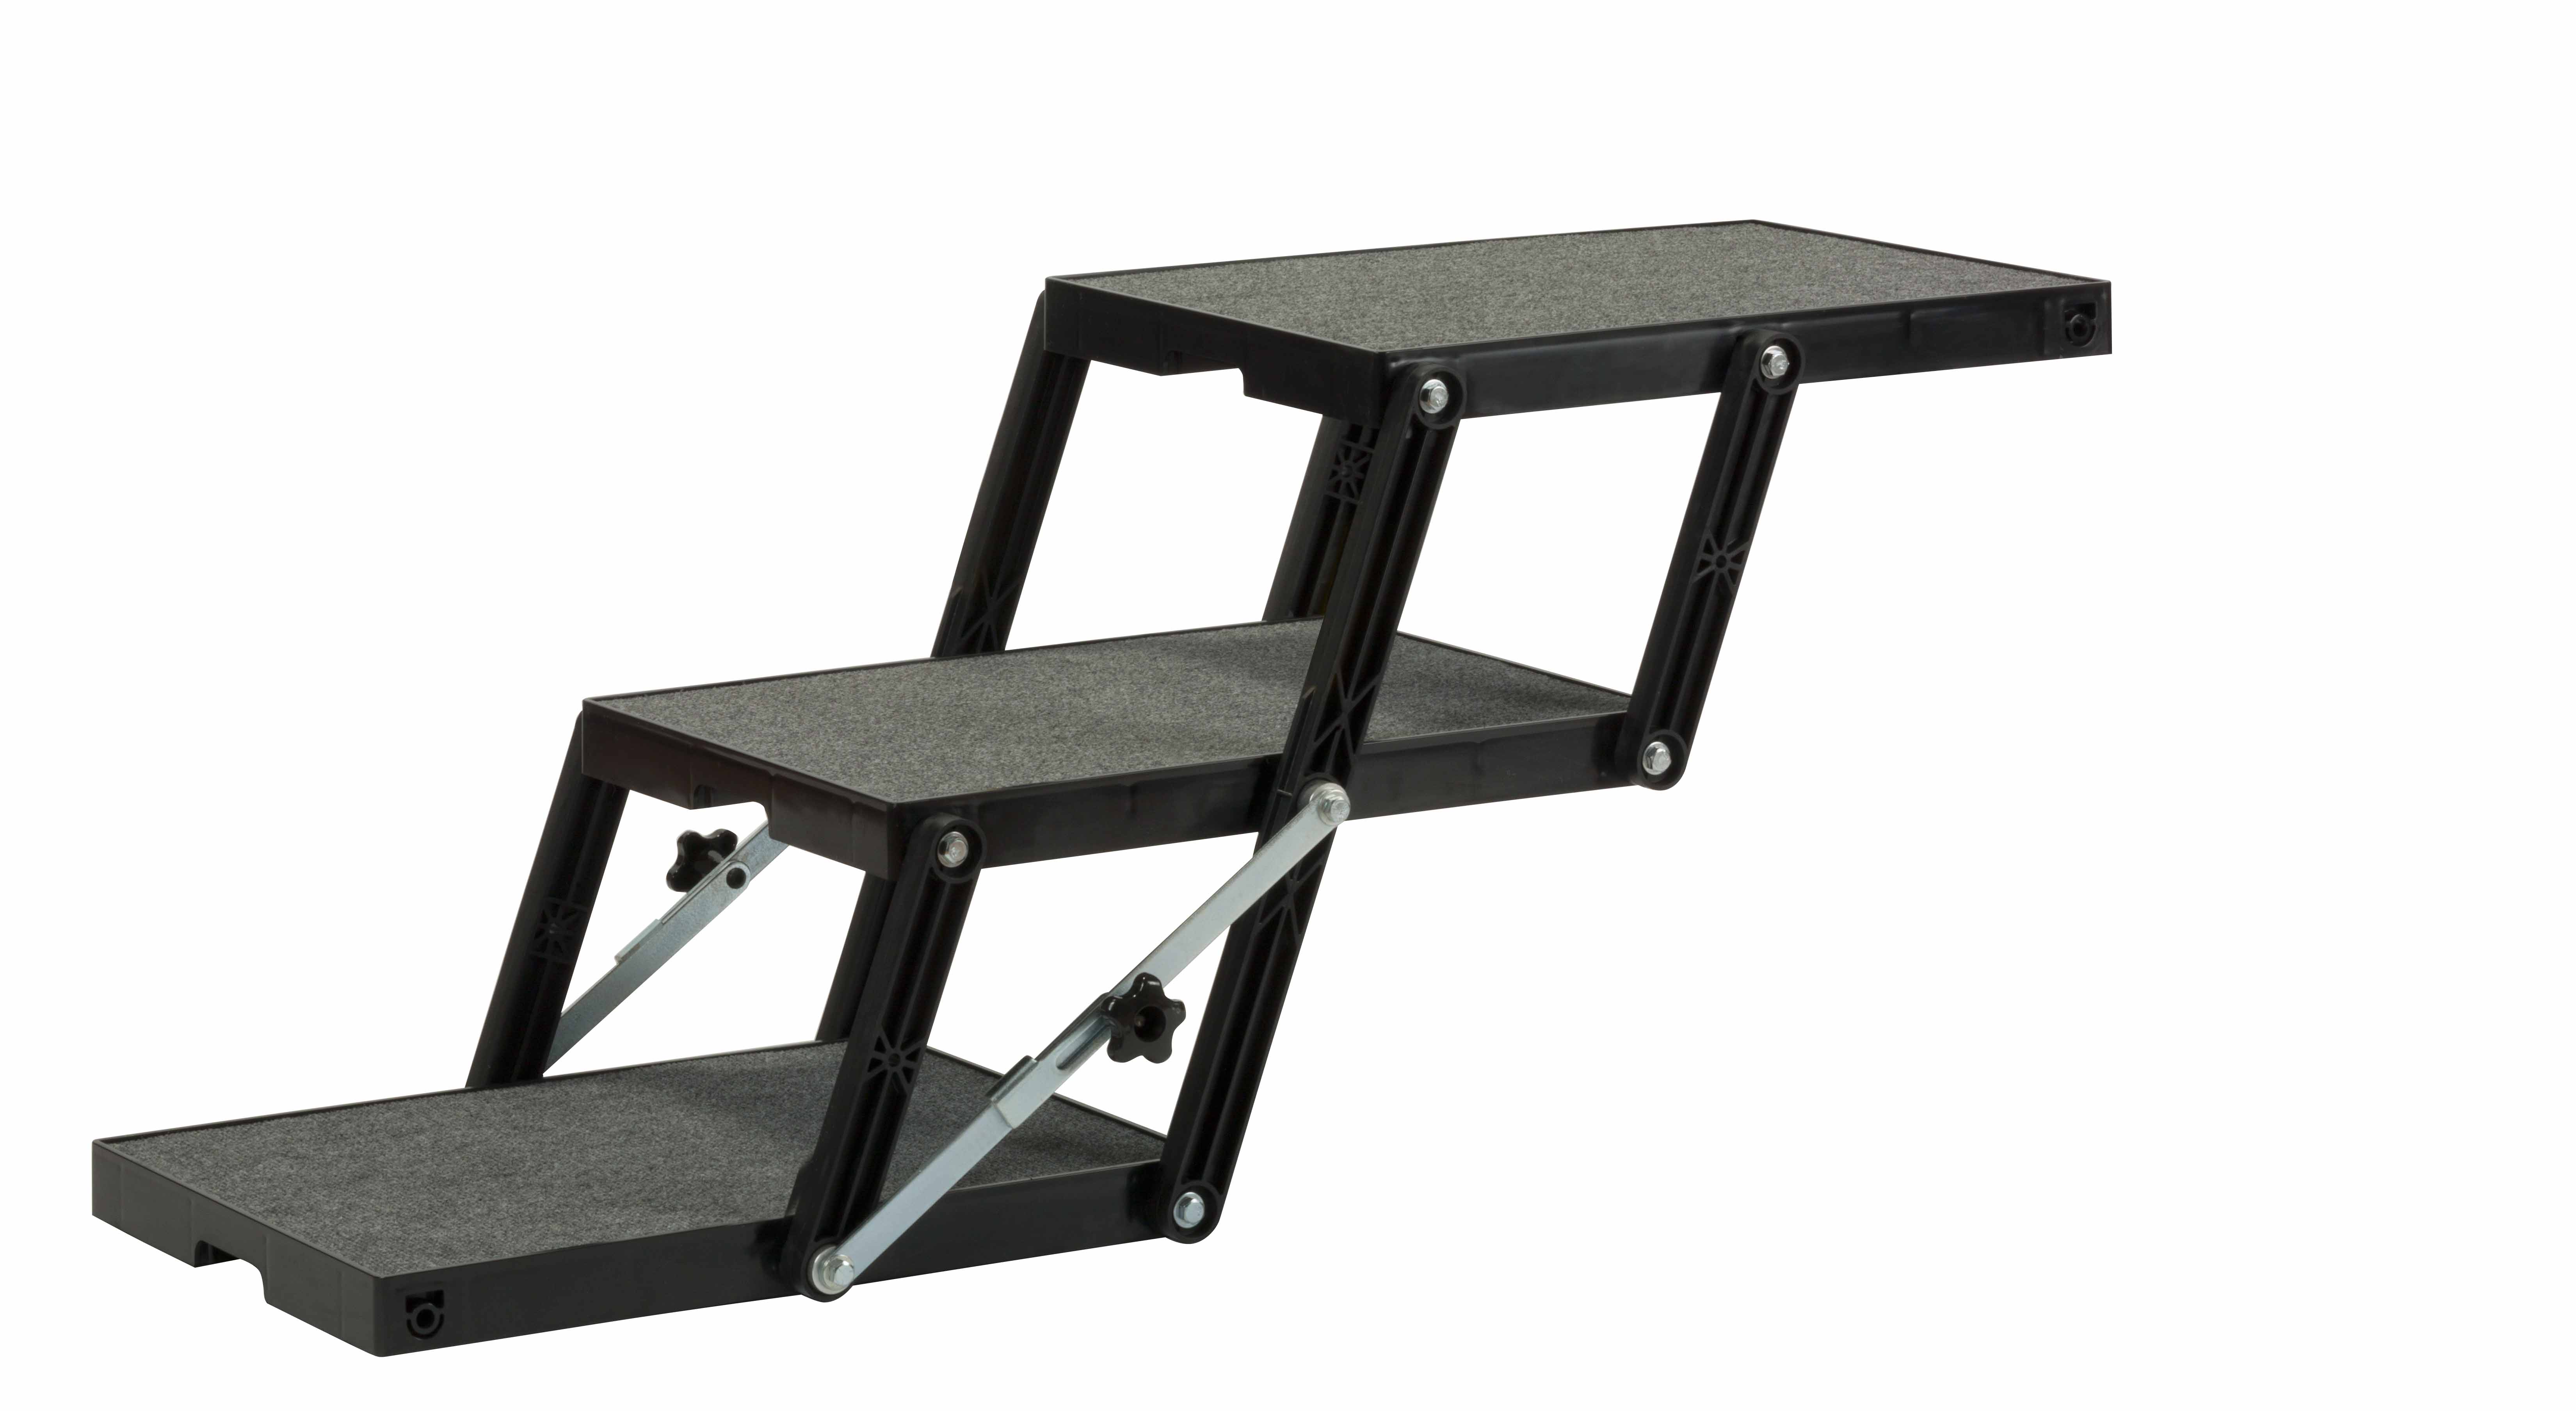 Dog Ramp for SUV - Steps - Petloader-ABS XL 18 - 3 Step Extended